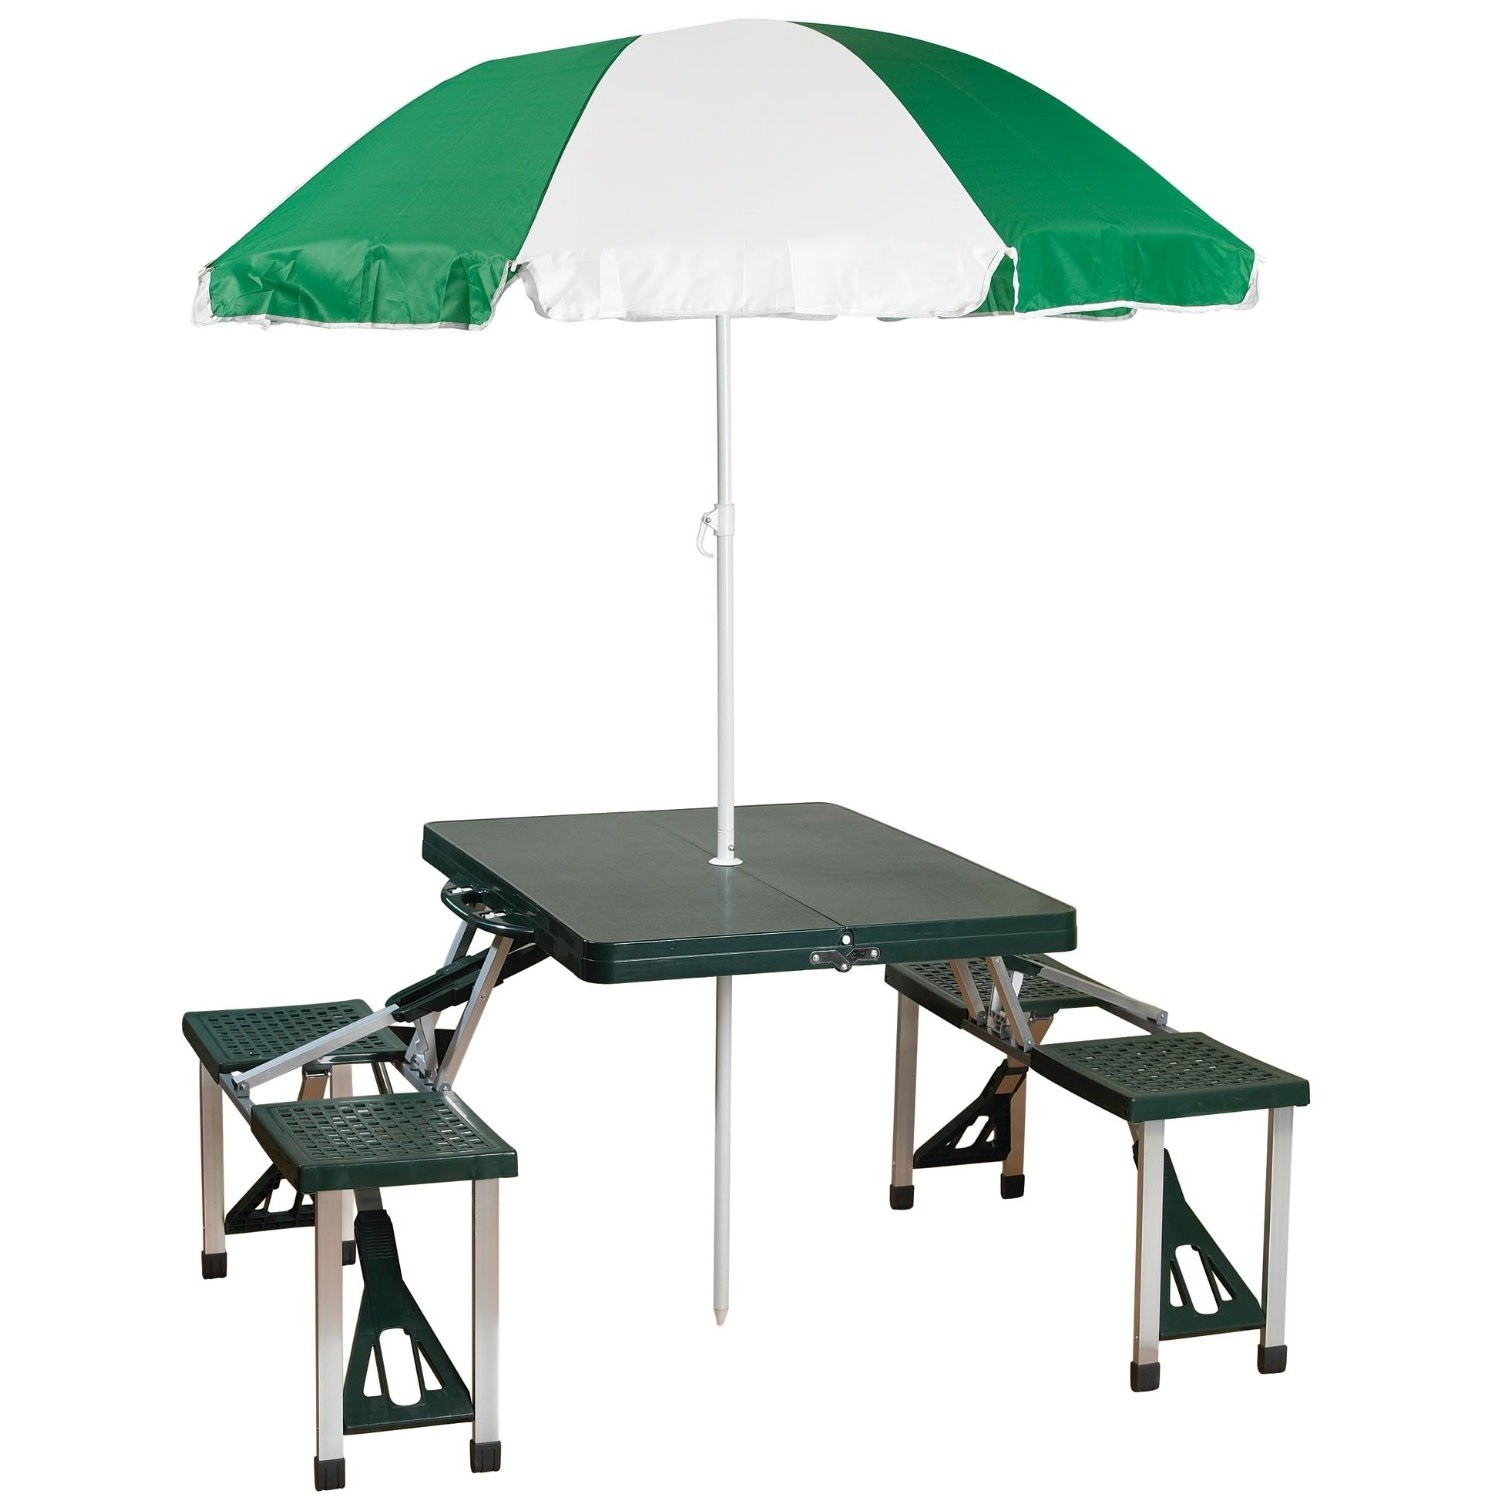 Stansport Picnic Table And Umbrella Combo Pack - Walmart.com